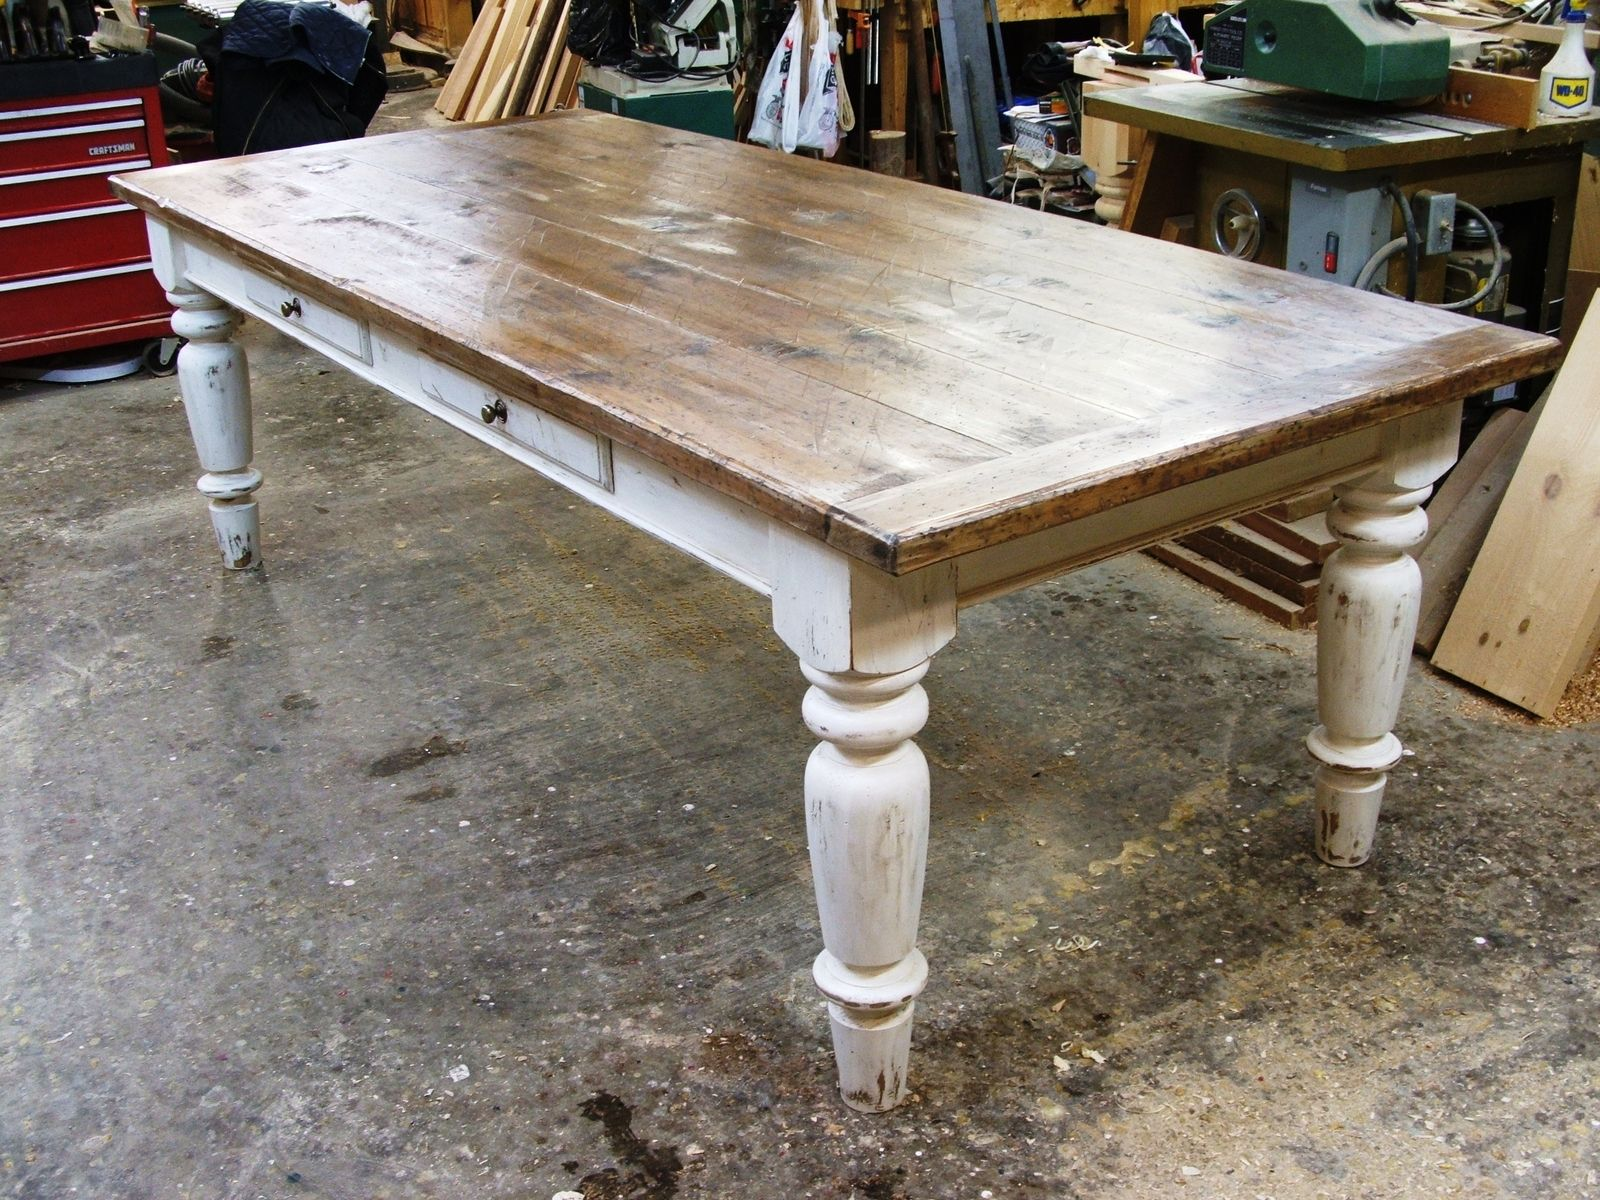 Antique farmhouse table - White Scrubbed Pine Farmhouse Table I Love The Look Of A Sturdy Farm Table For